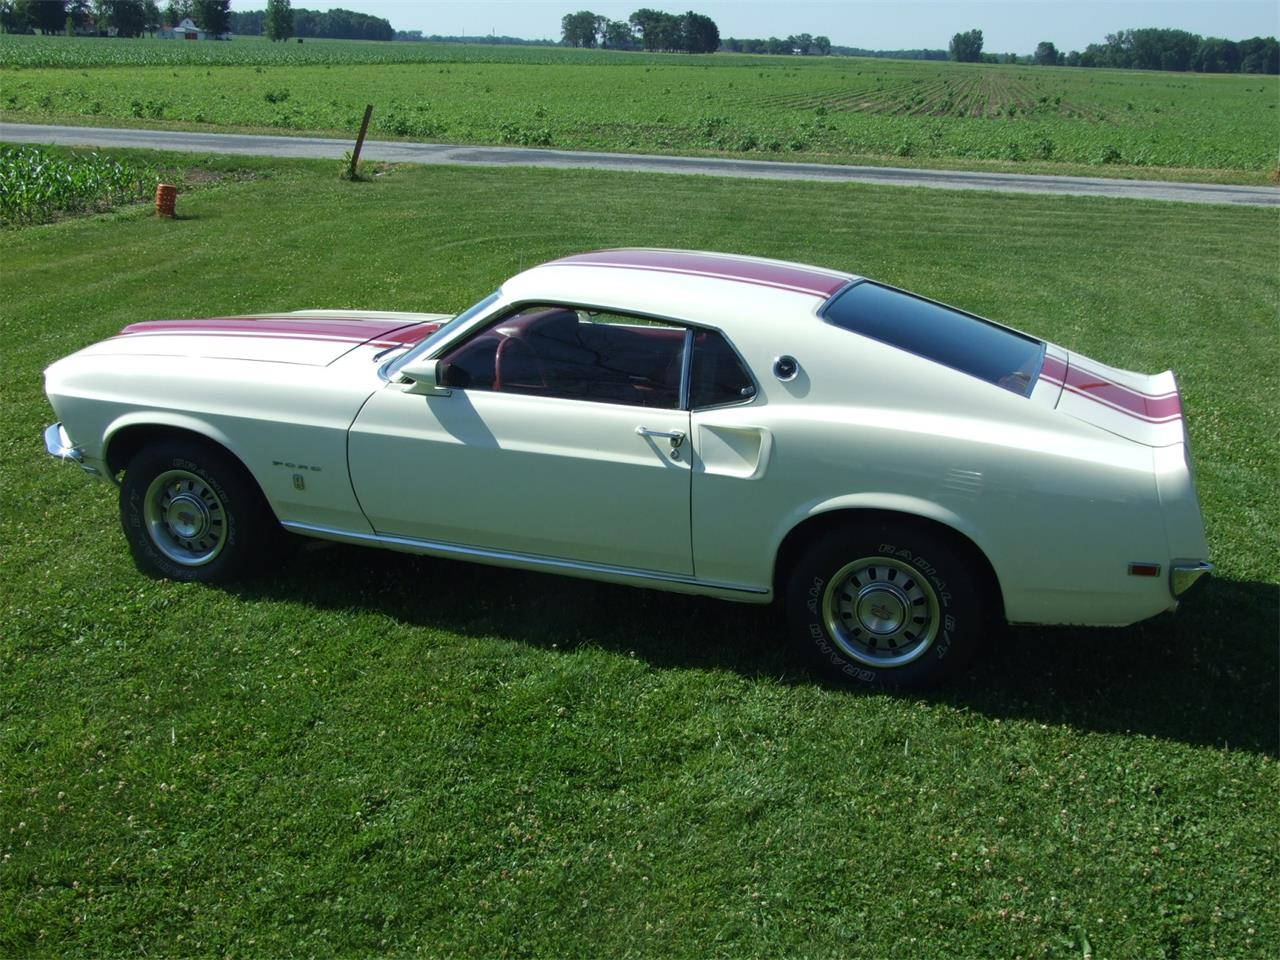 Large Picture of 1969 Mustang located in Monticello Indiana - $34,500.00 - JKJU